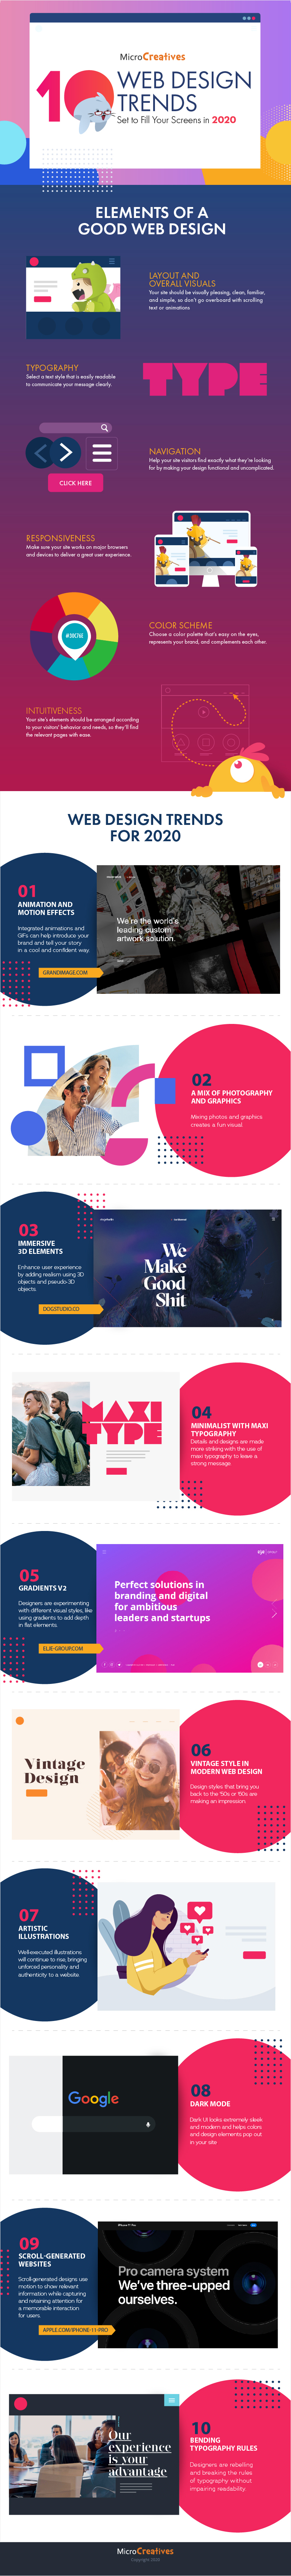 Infographic lists web design trends for 2020